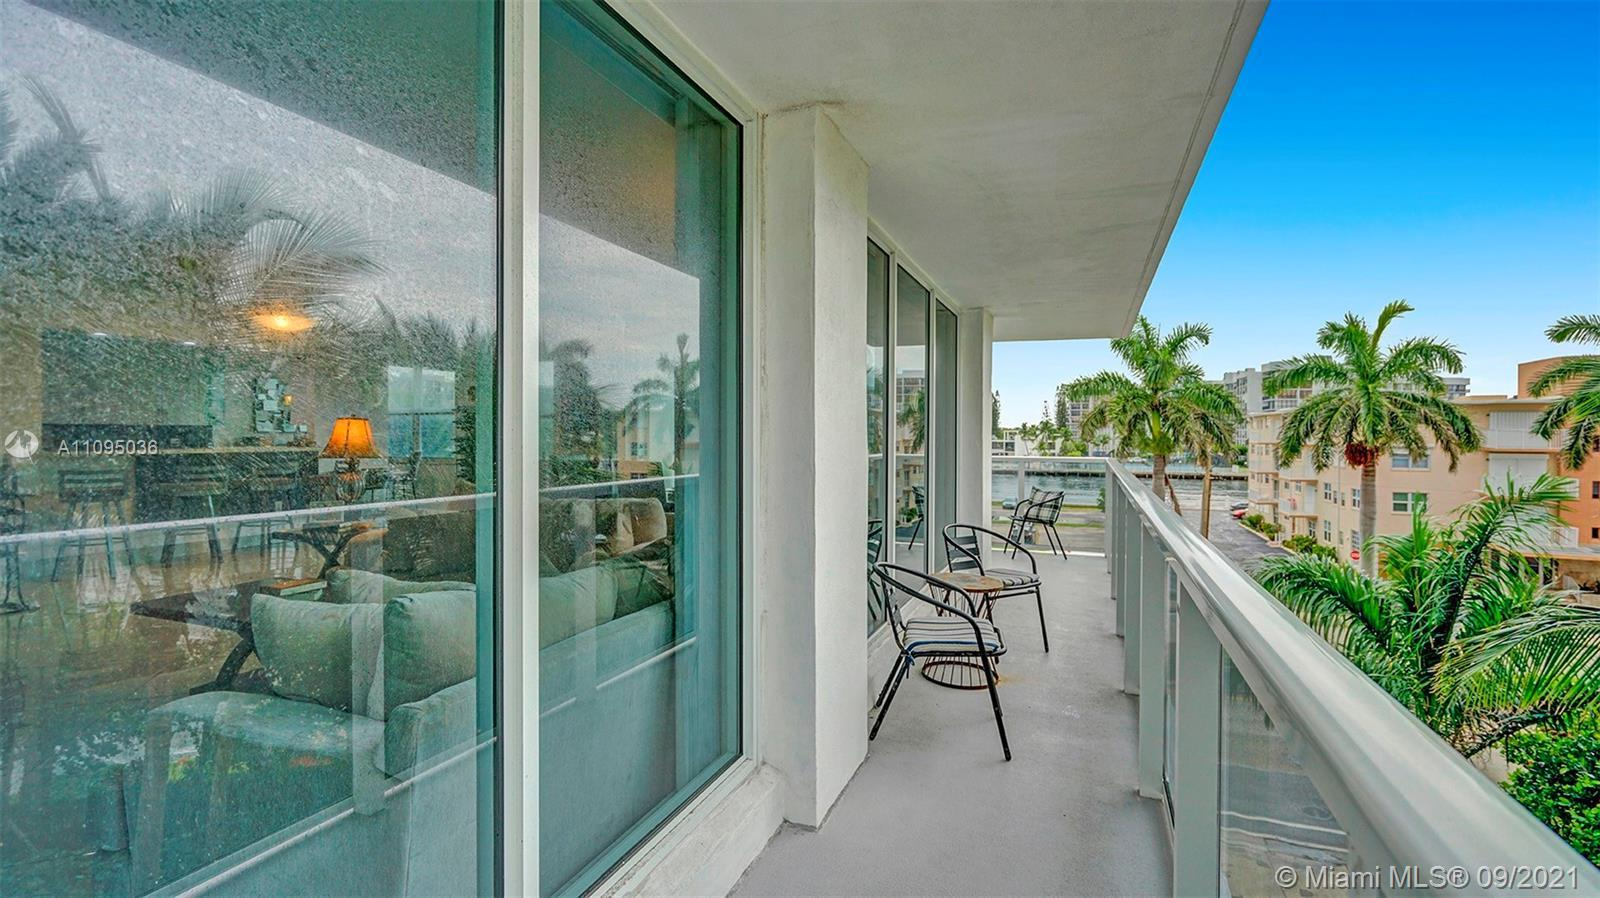 Fall in love with this stunning and spacious completely remodeled modern residence with open kitchen